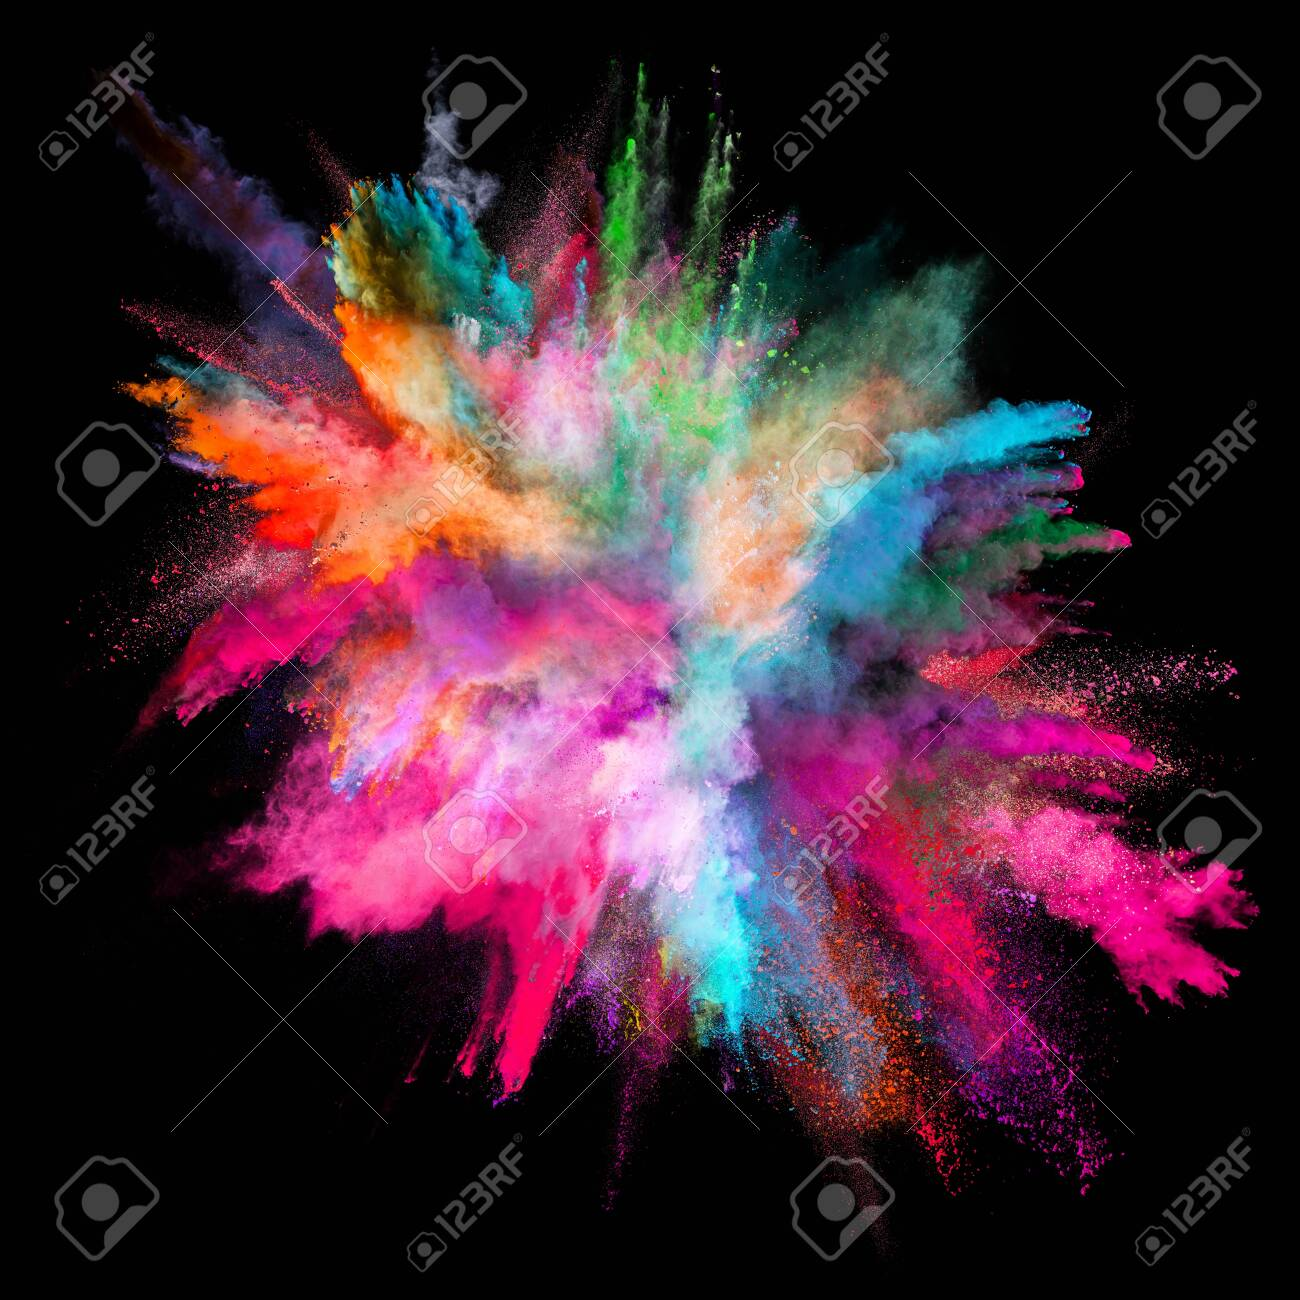 Colored powder explosion on black background. - 123488752